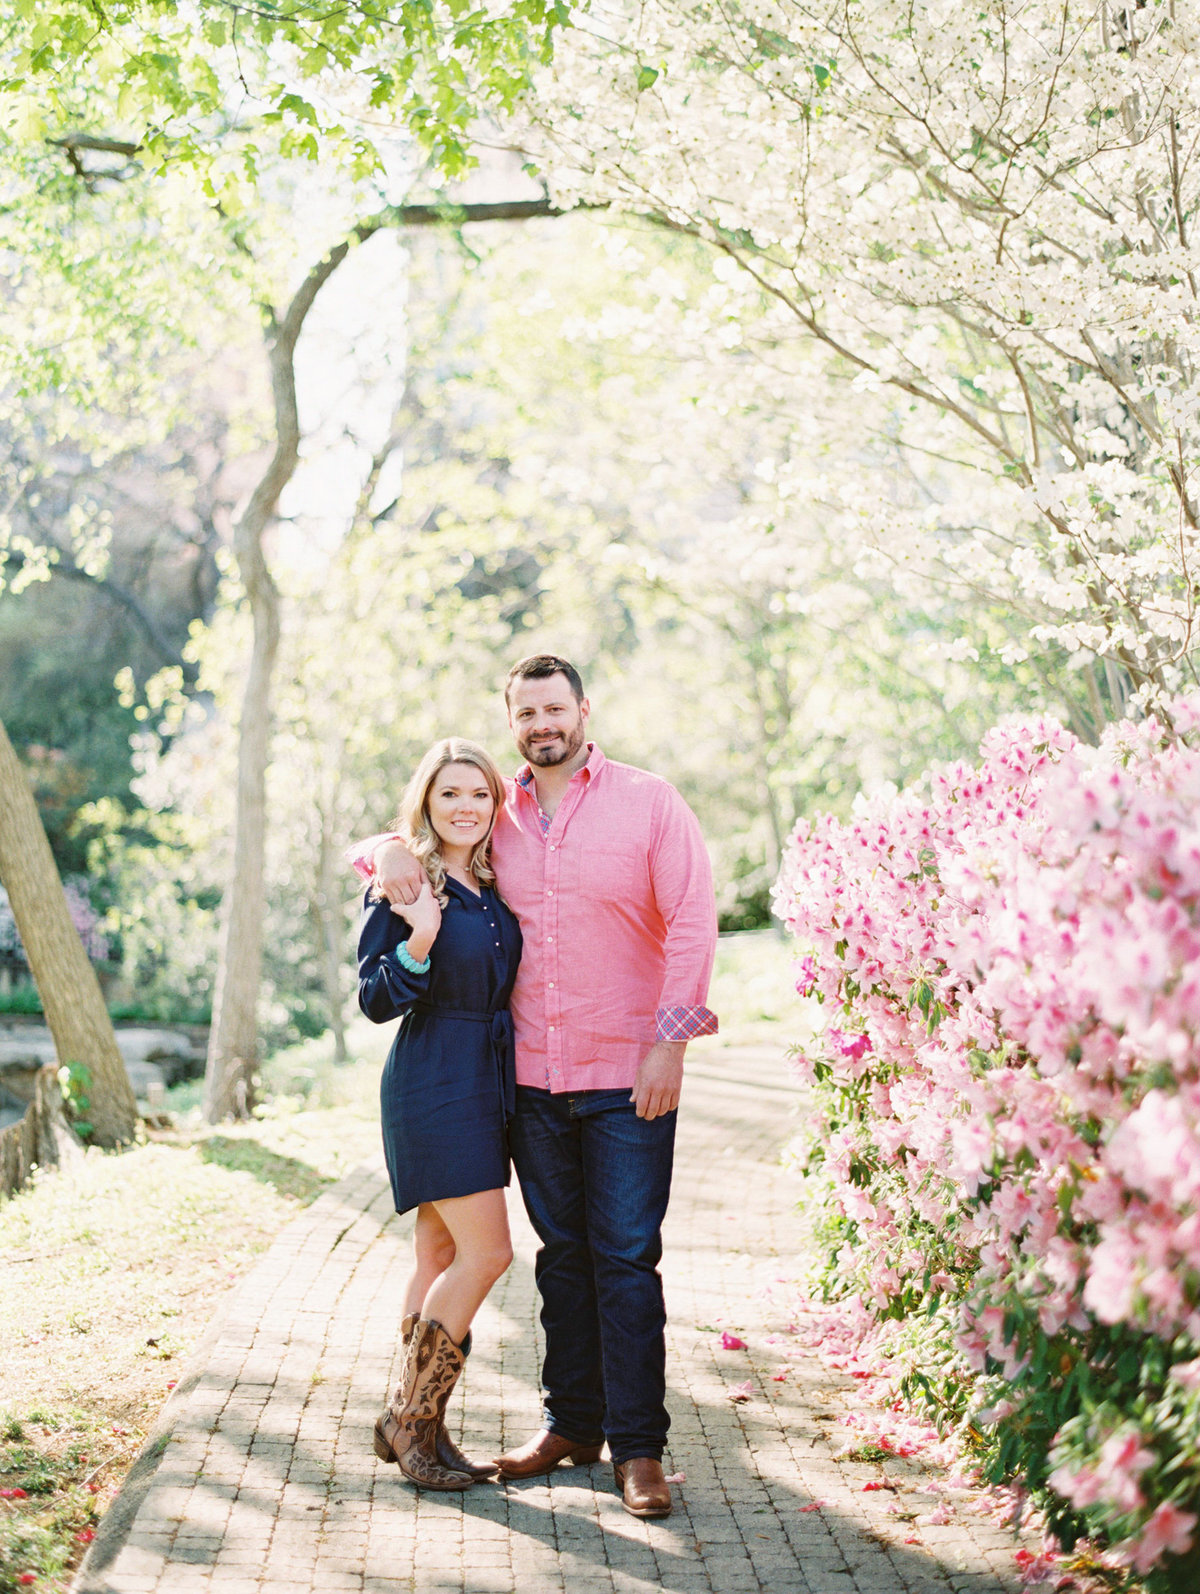 Courtney Hanson Photography - Dallas Spring Engagement Photos-013